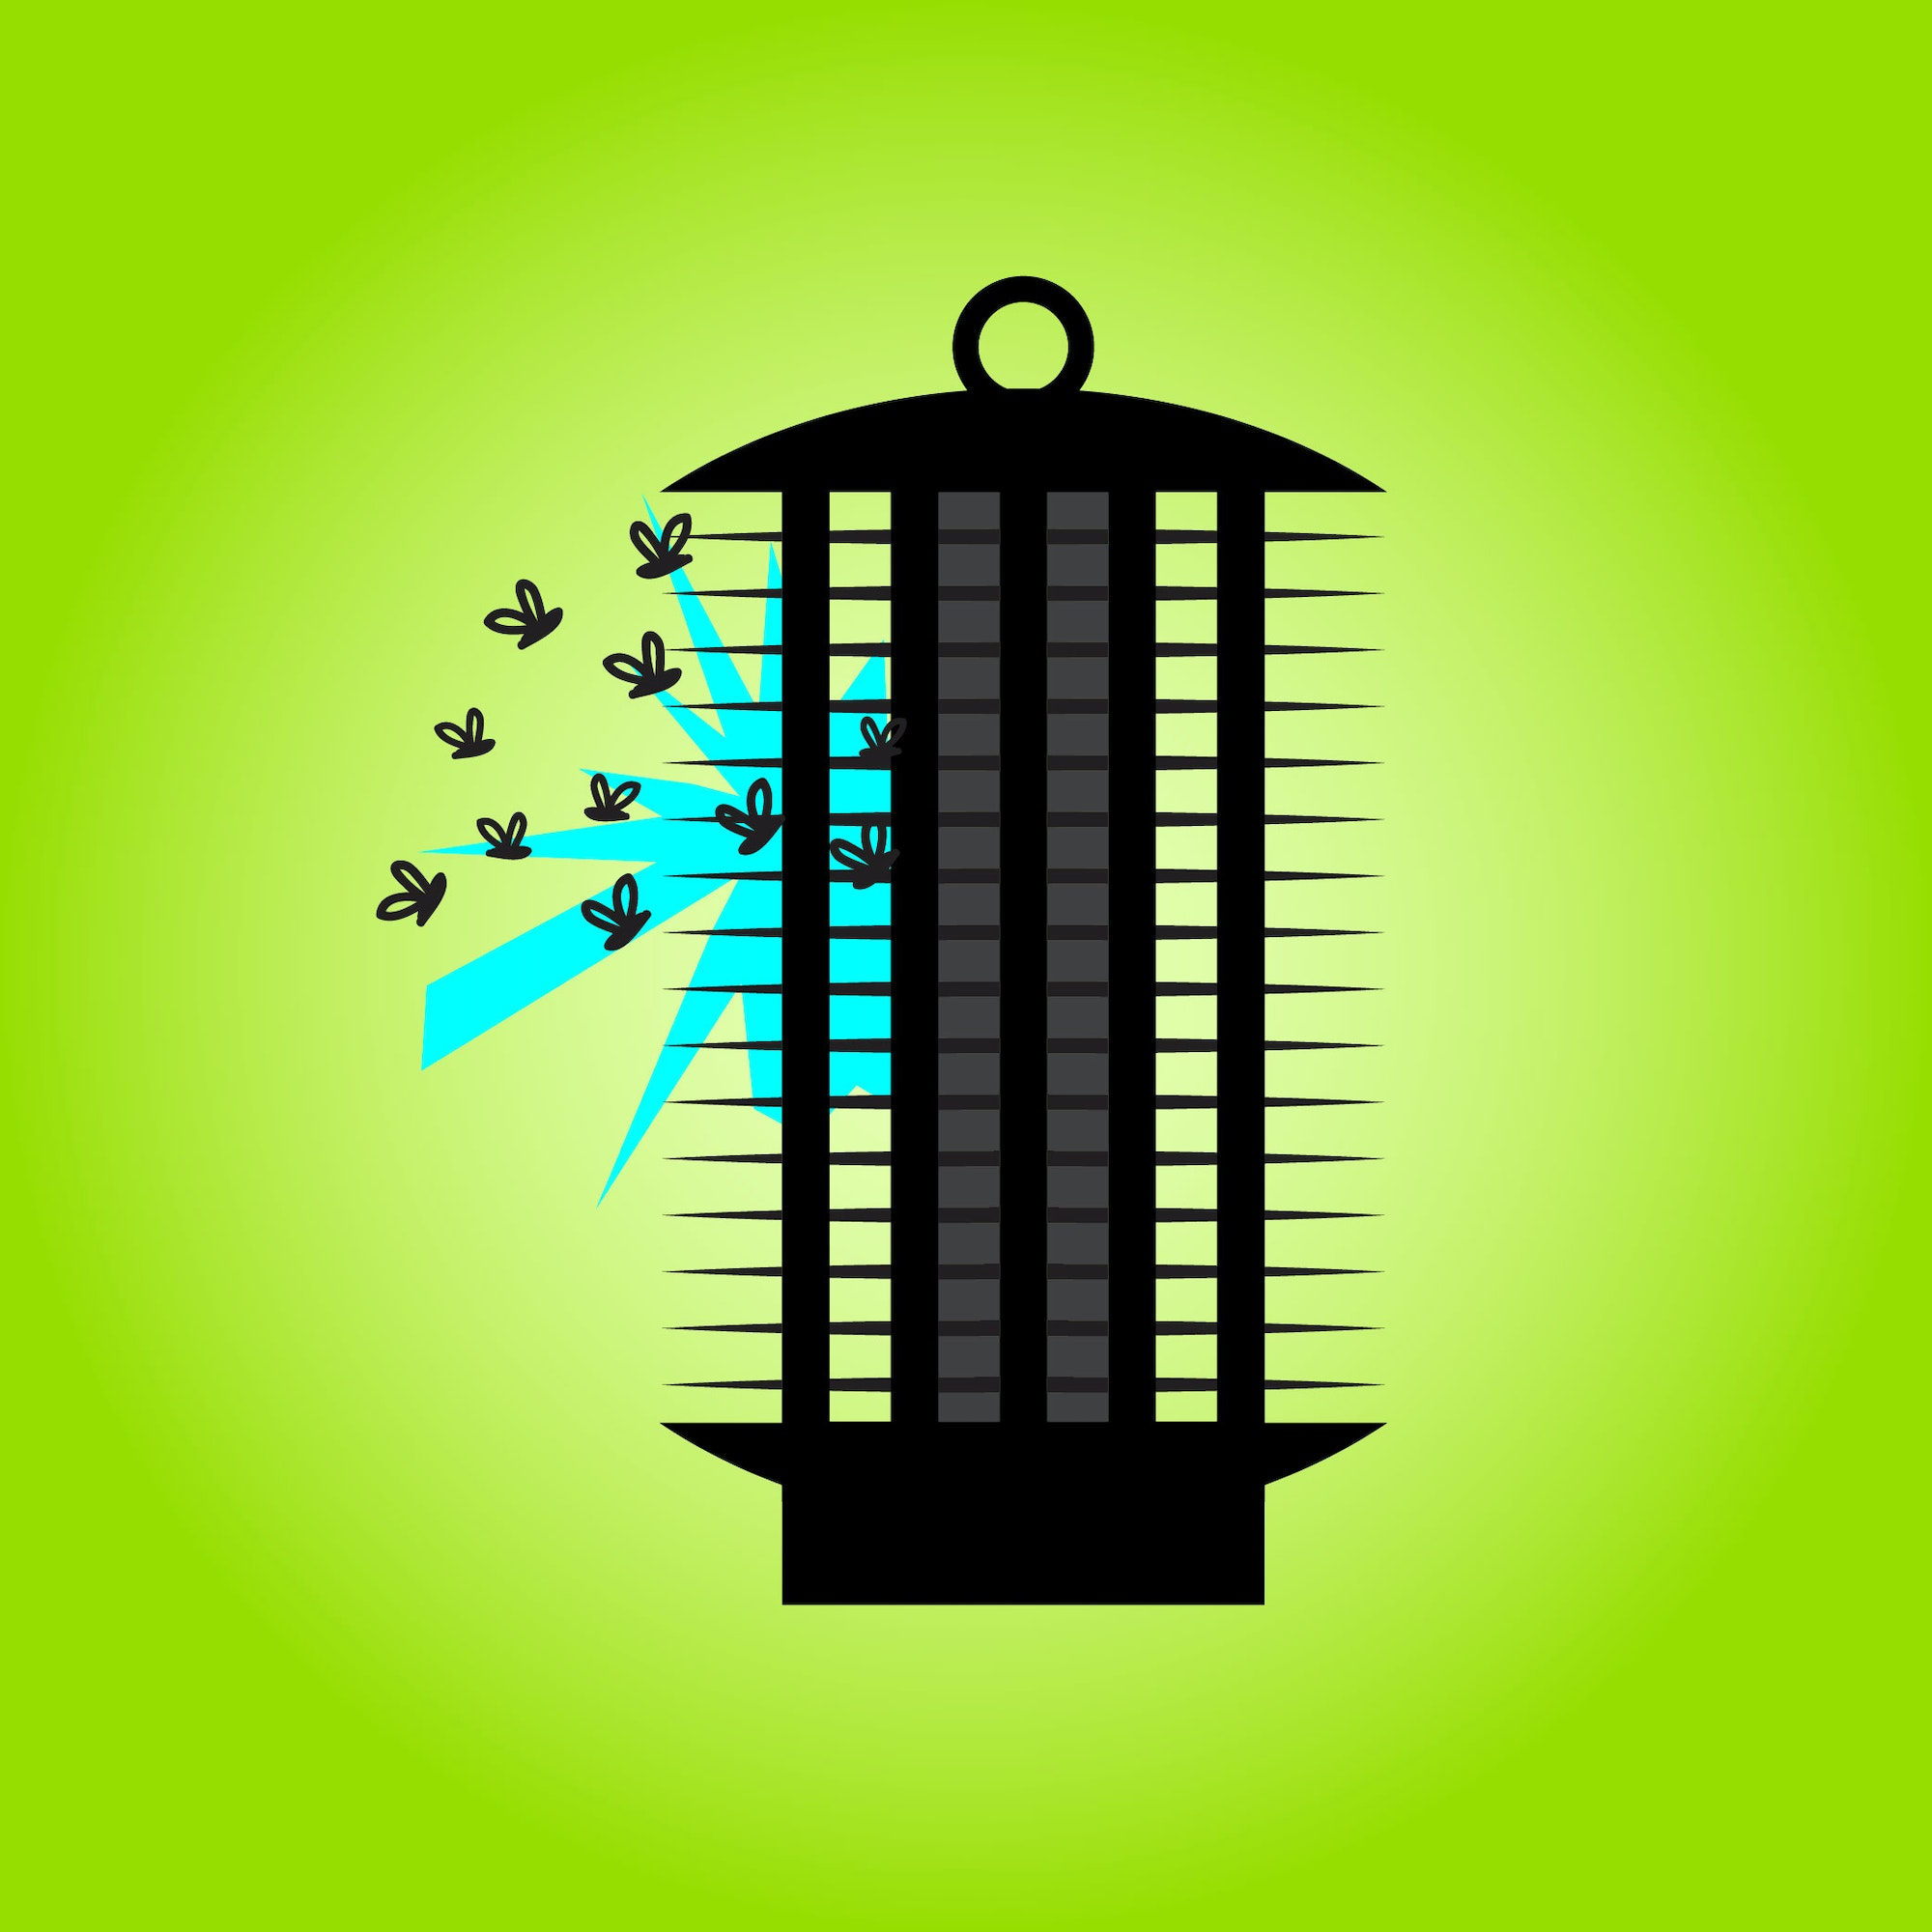 May contain: bug zapper, electricity